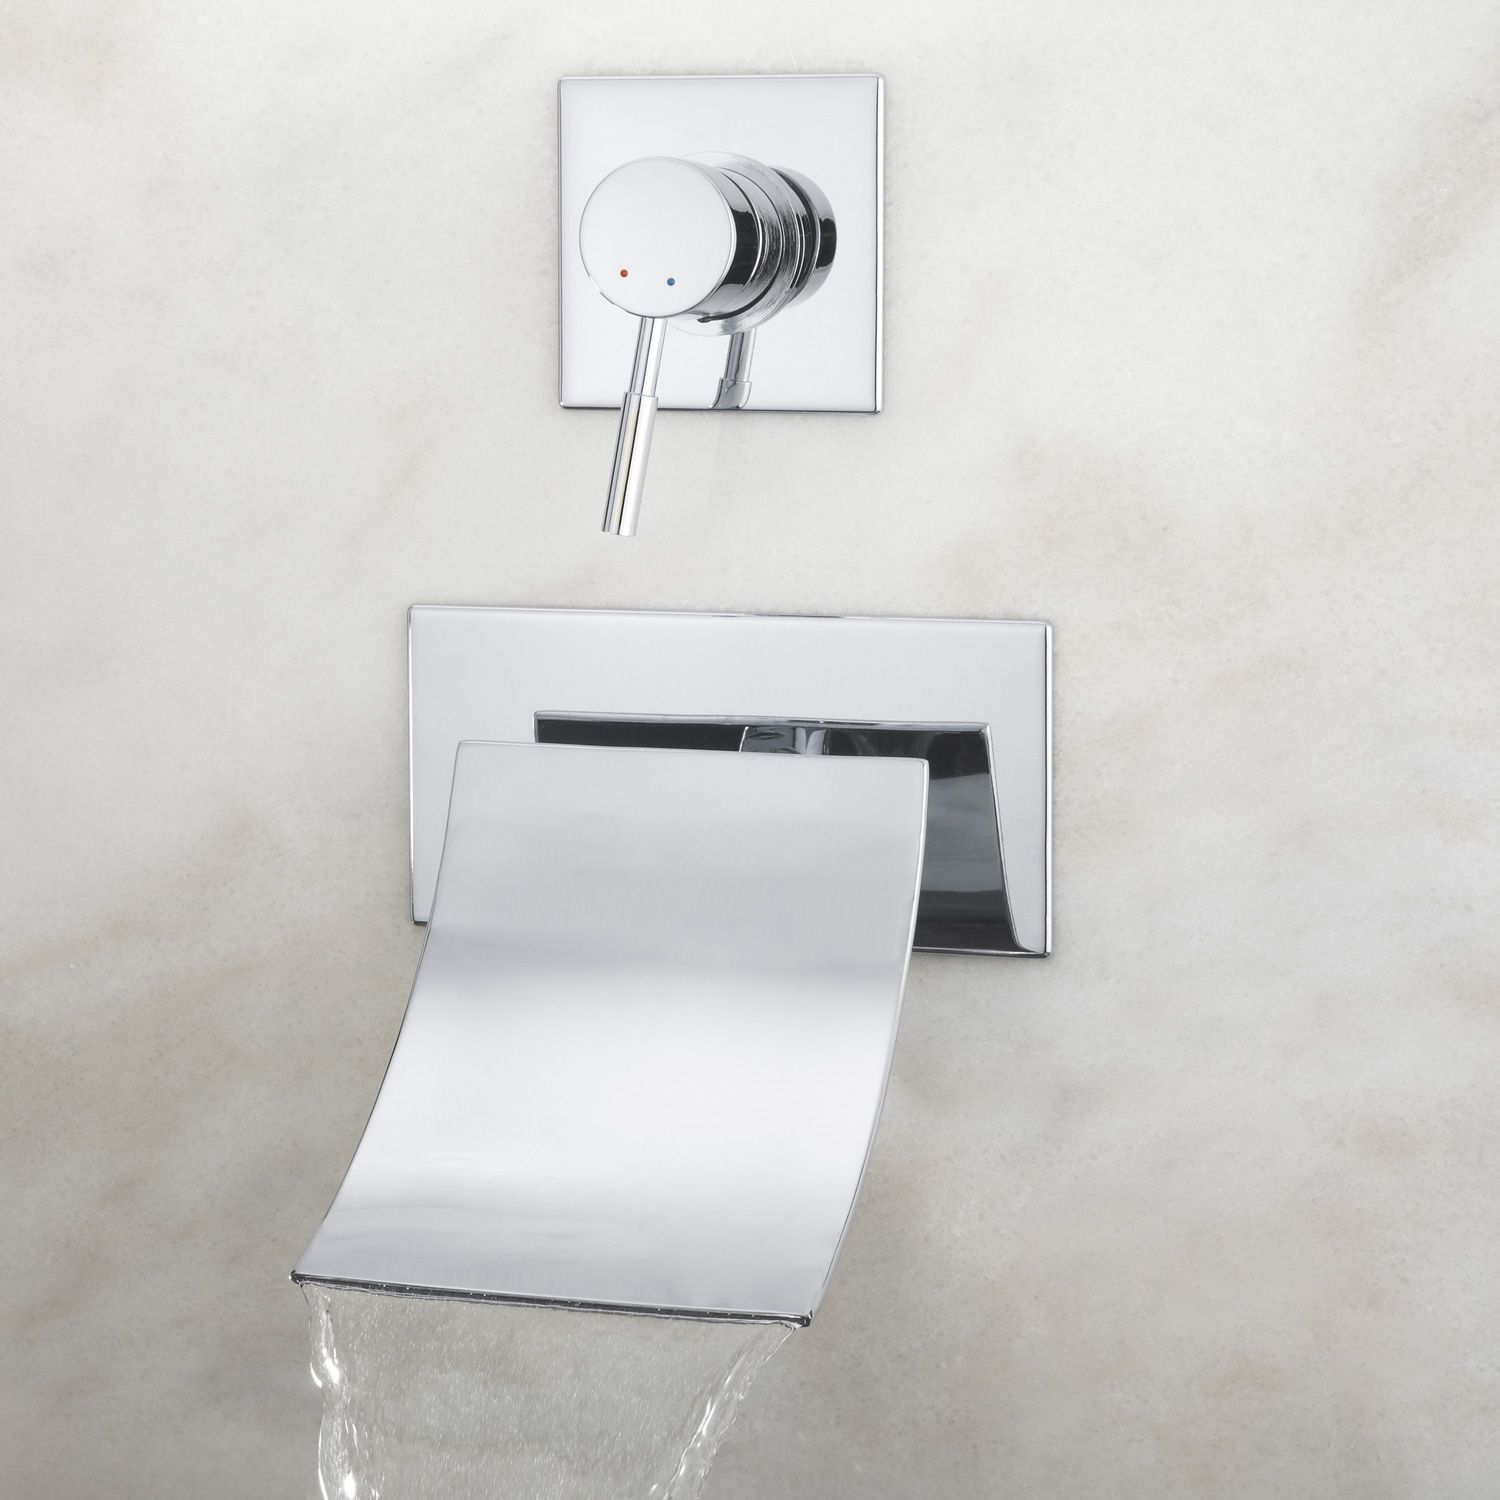 Reston Wall Mount Tub Faucet With Waterfall Spout | Signature Hardware